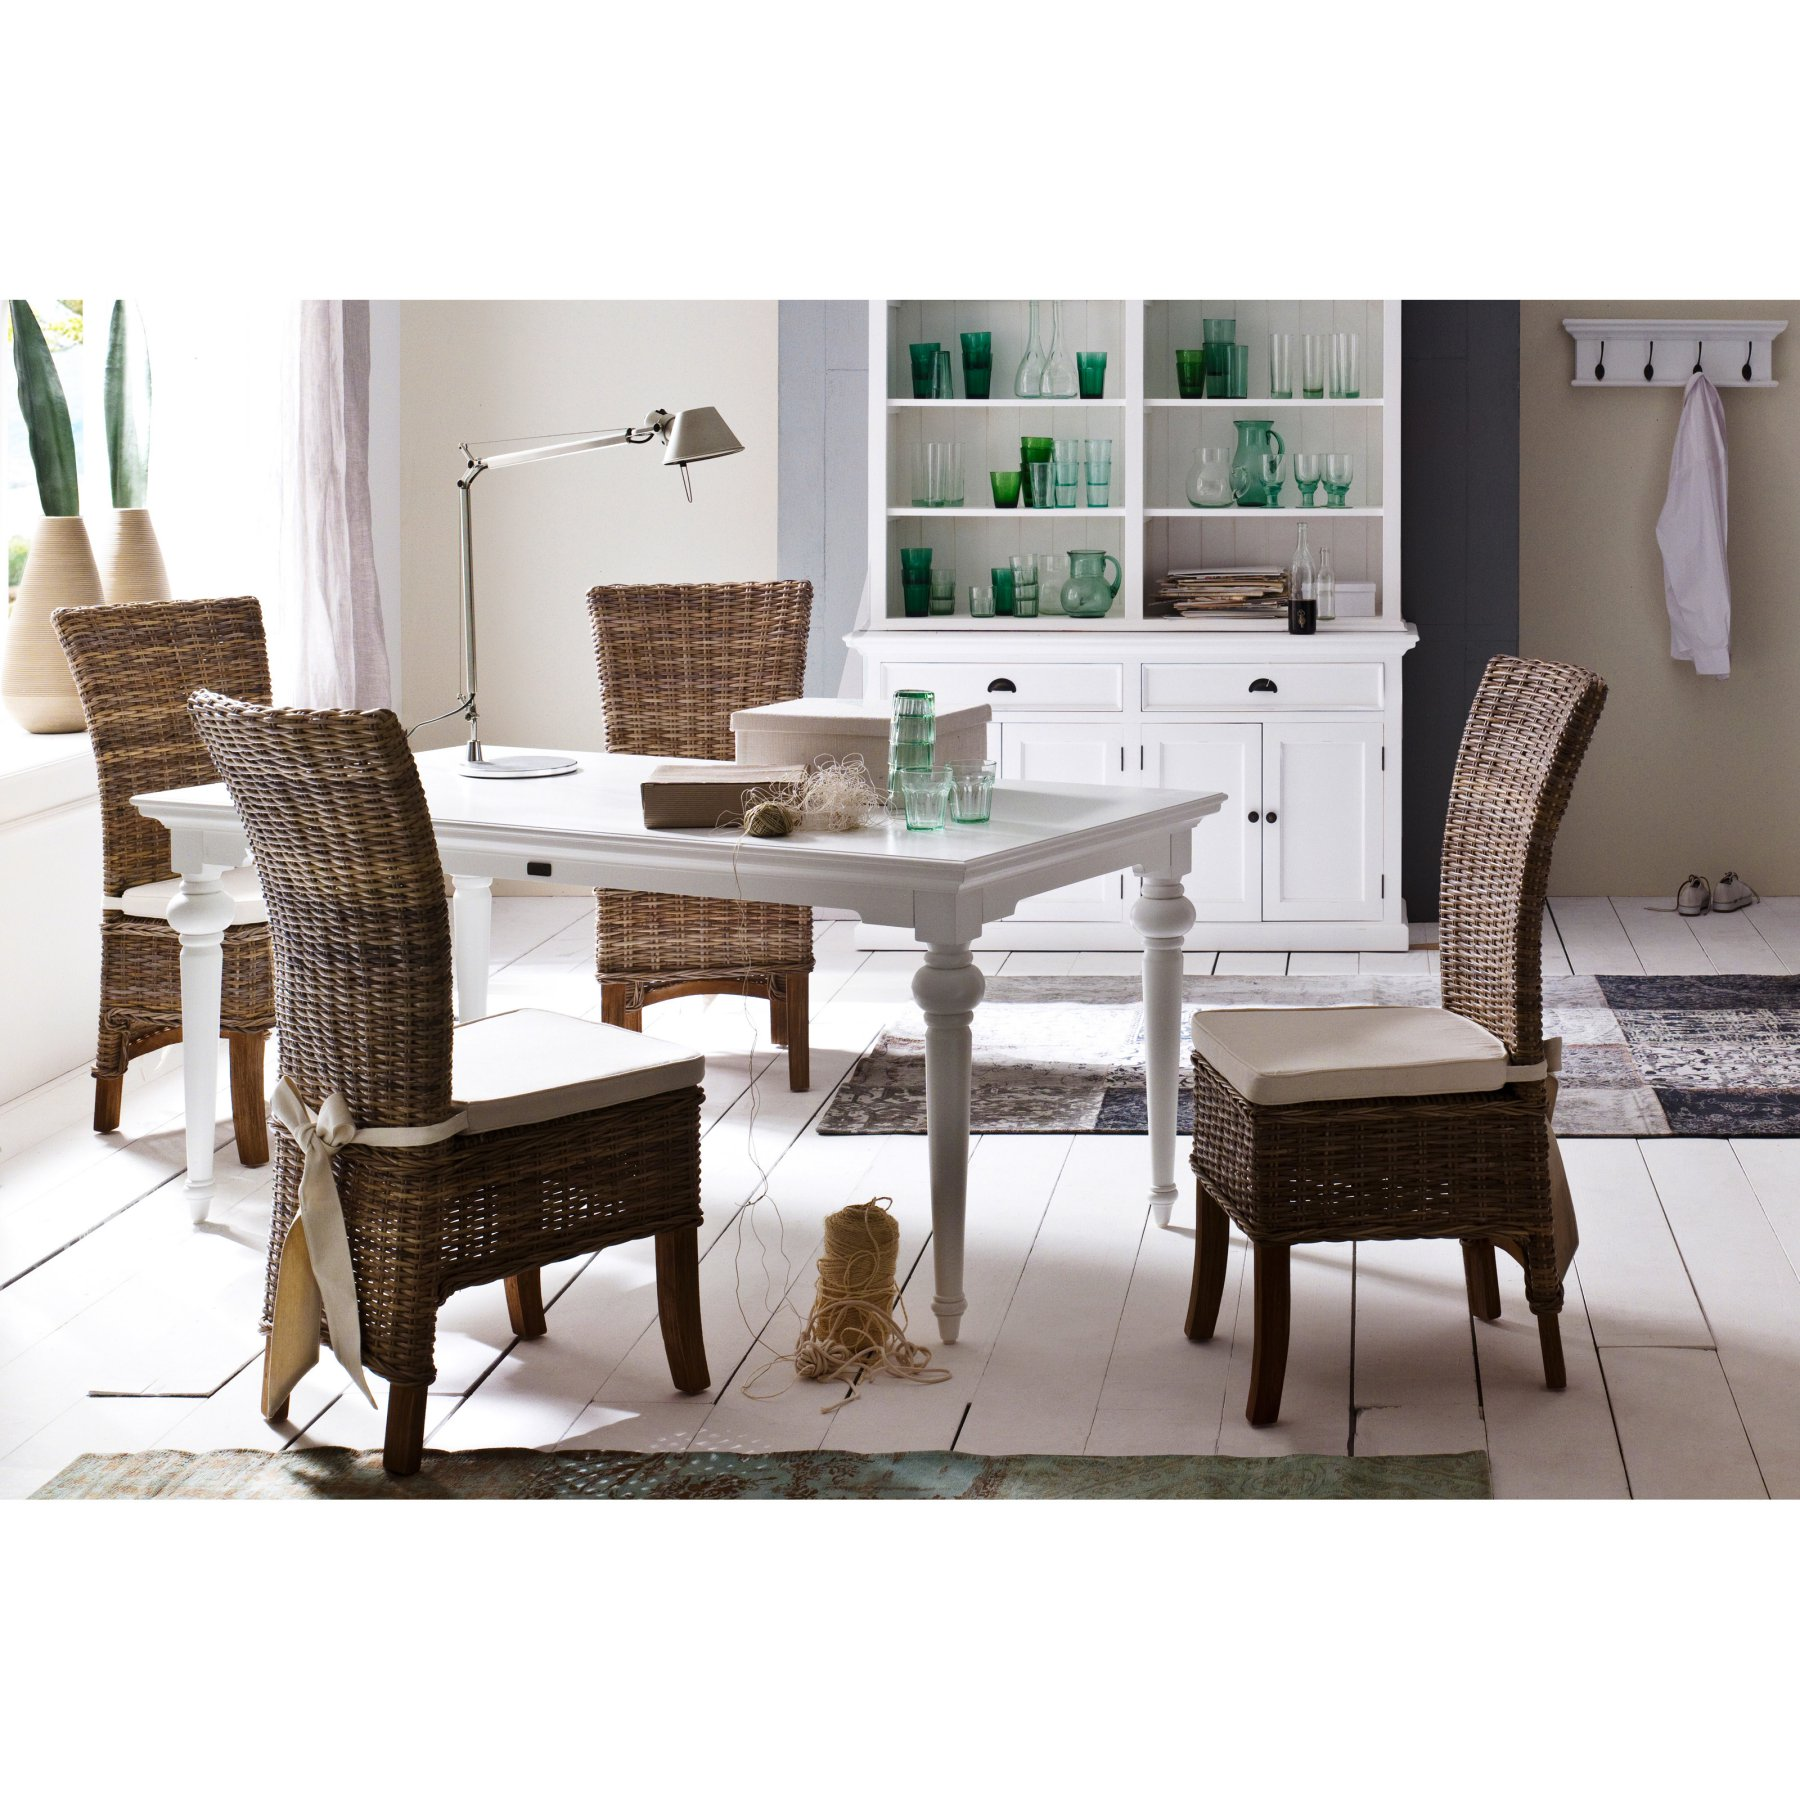 Provence By Infinita 71 In Rectangular Dining Table  814495017128